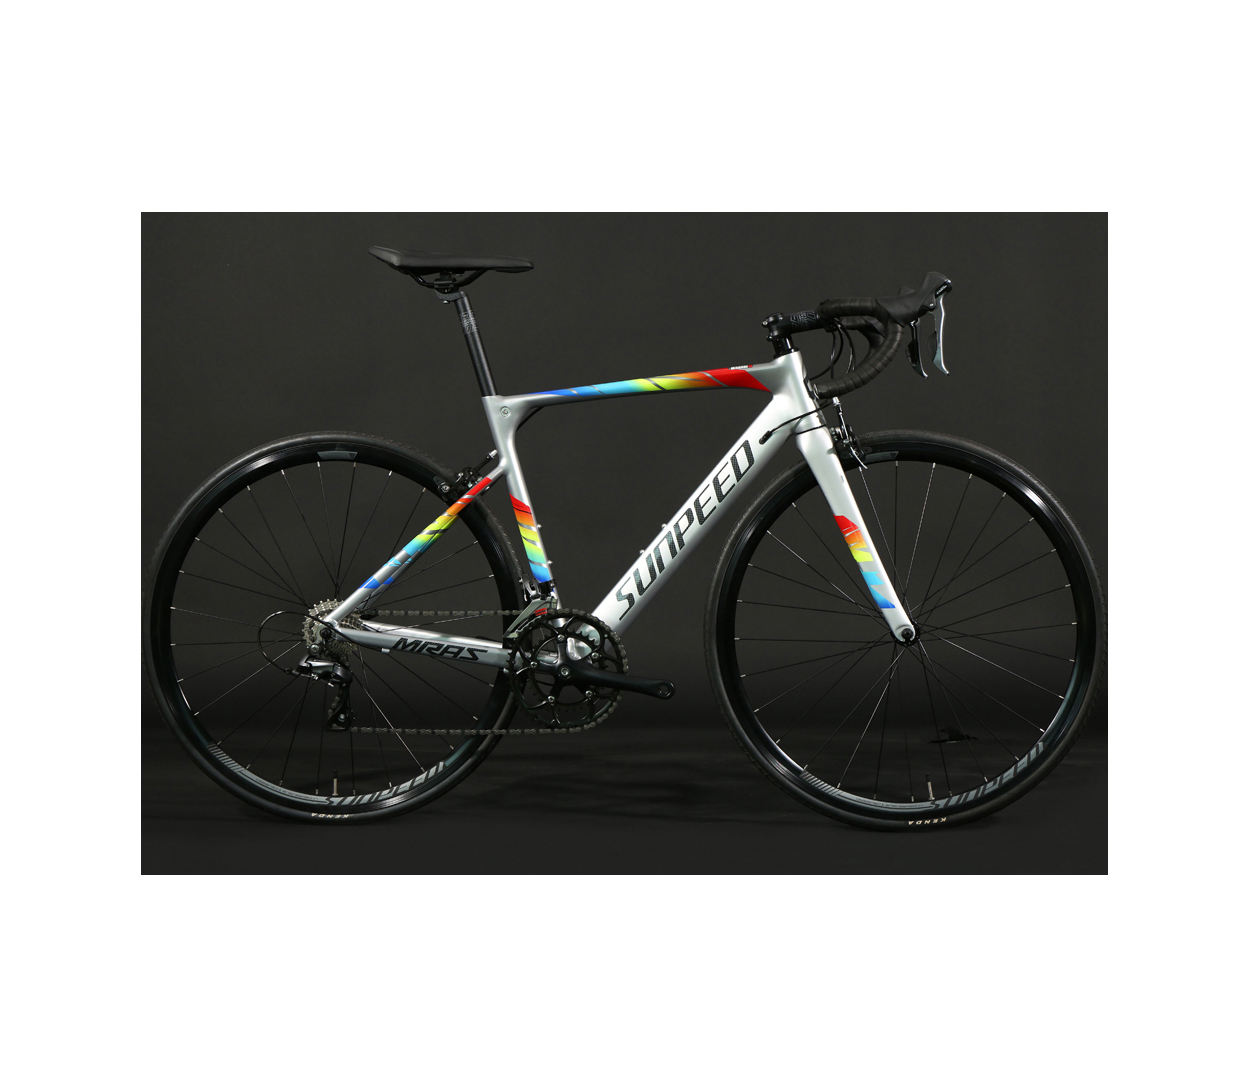 SUNPEED MARS light weight fast cool Carbon bicycle carbon Road Bike